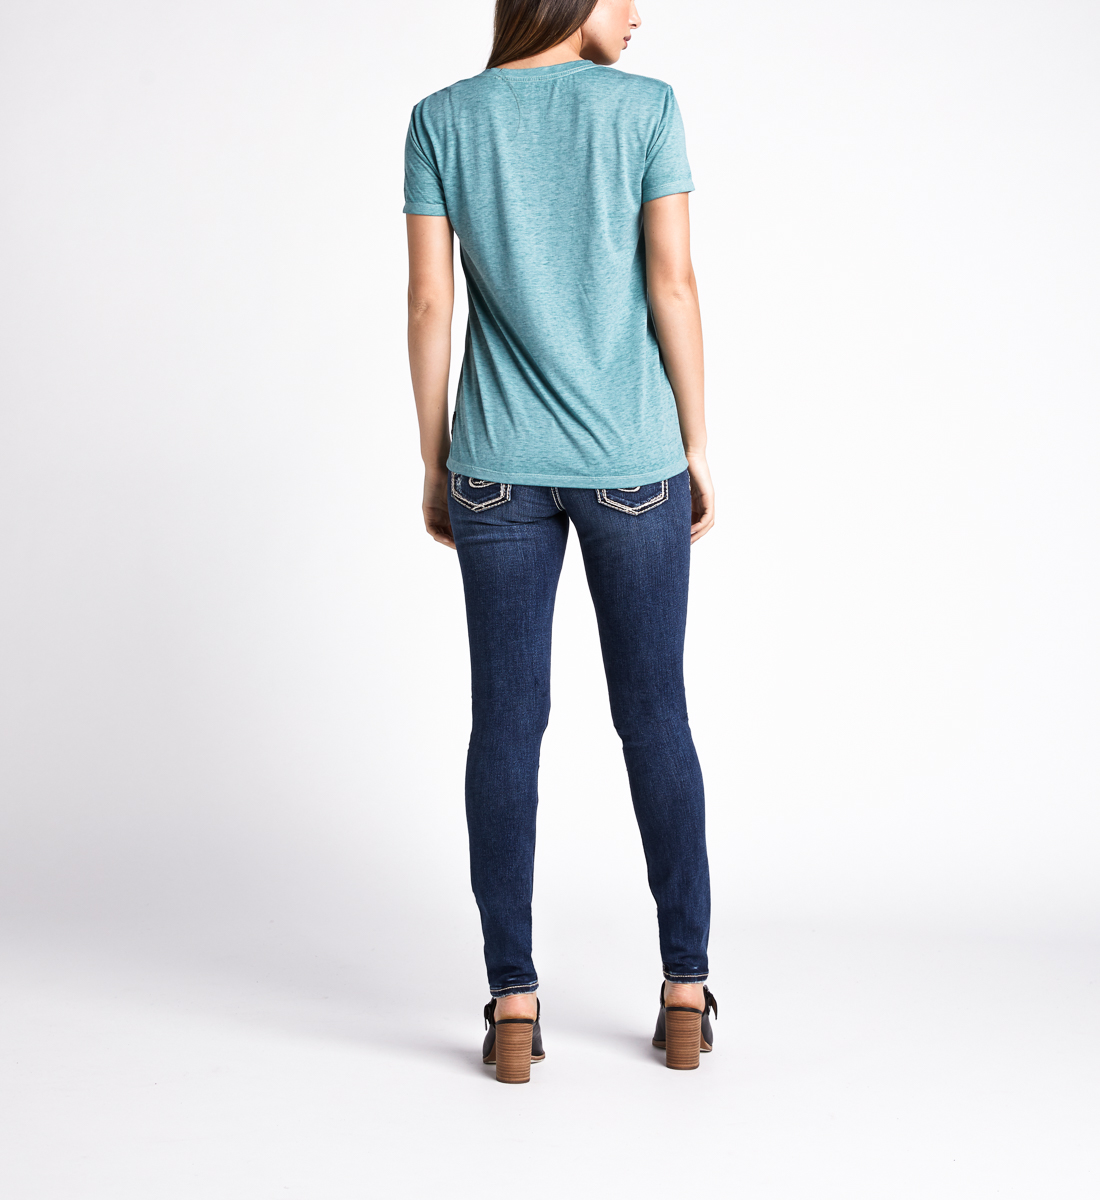 Mara Sunkissed Graphic Tee,Dusty Green Side